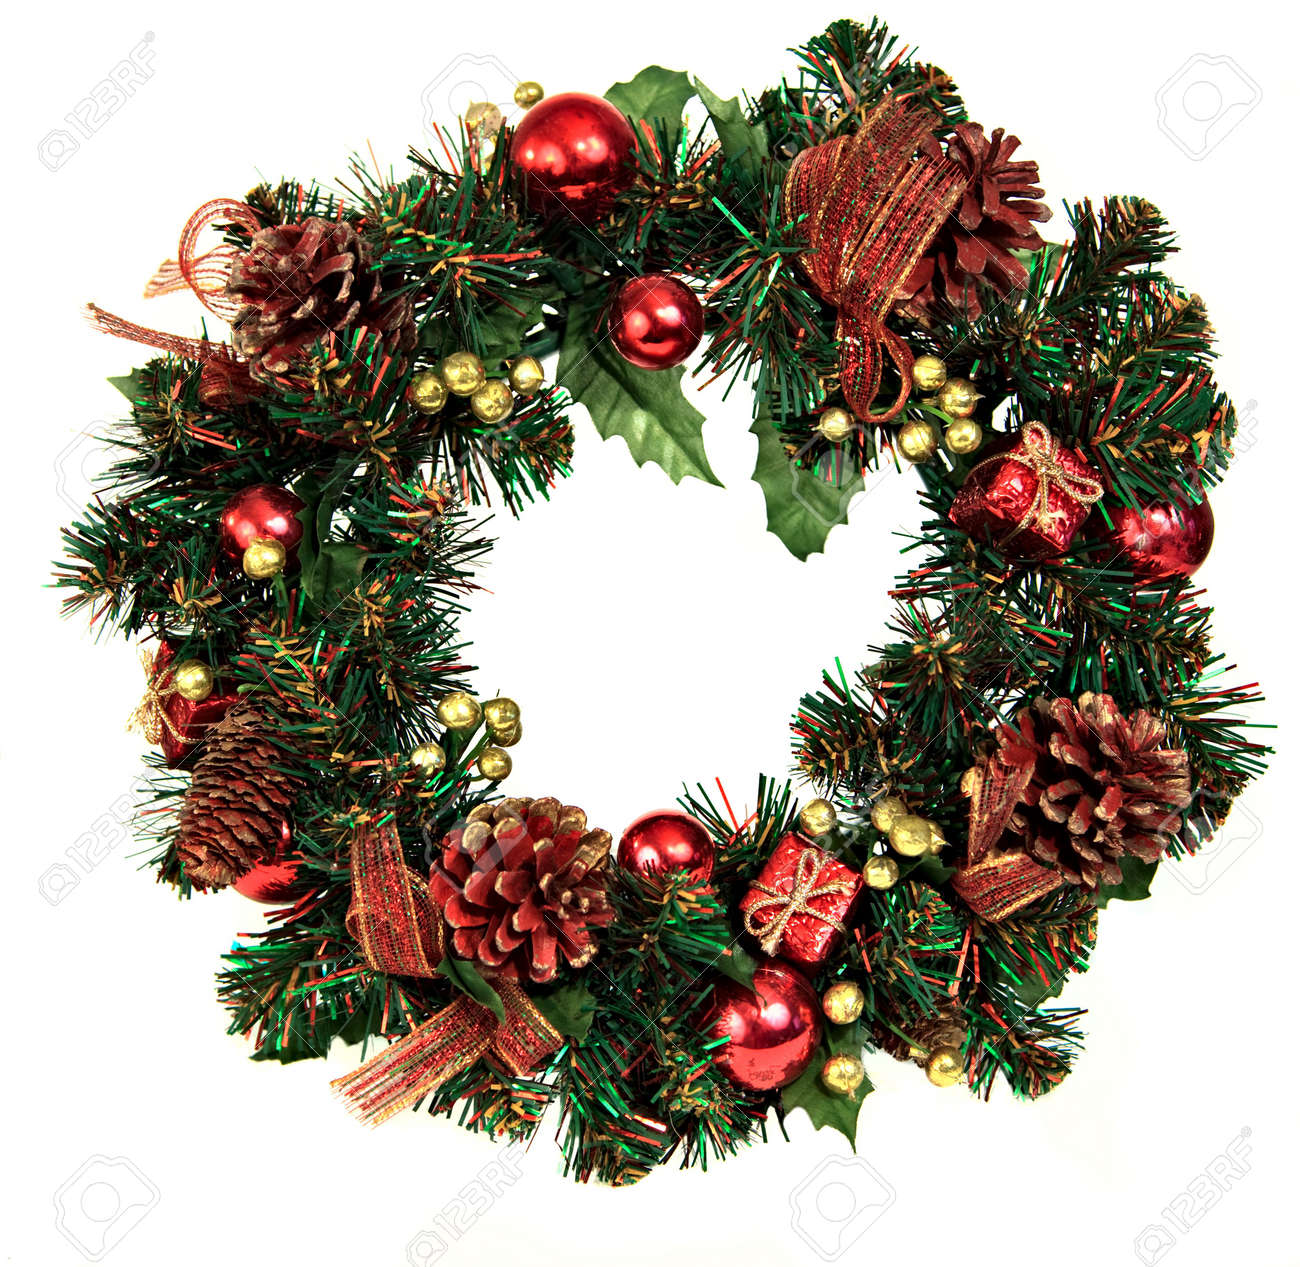 Christmas wreath ornaments - A Decorated Christmas Wreath With Pinecones And Ornaments Stock Photo 5770050